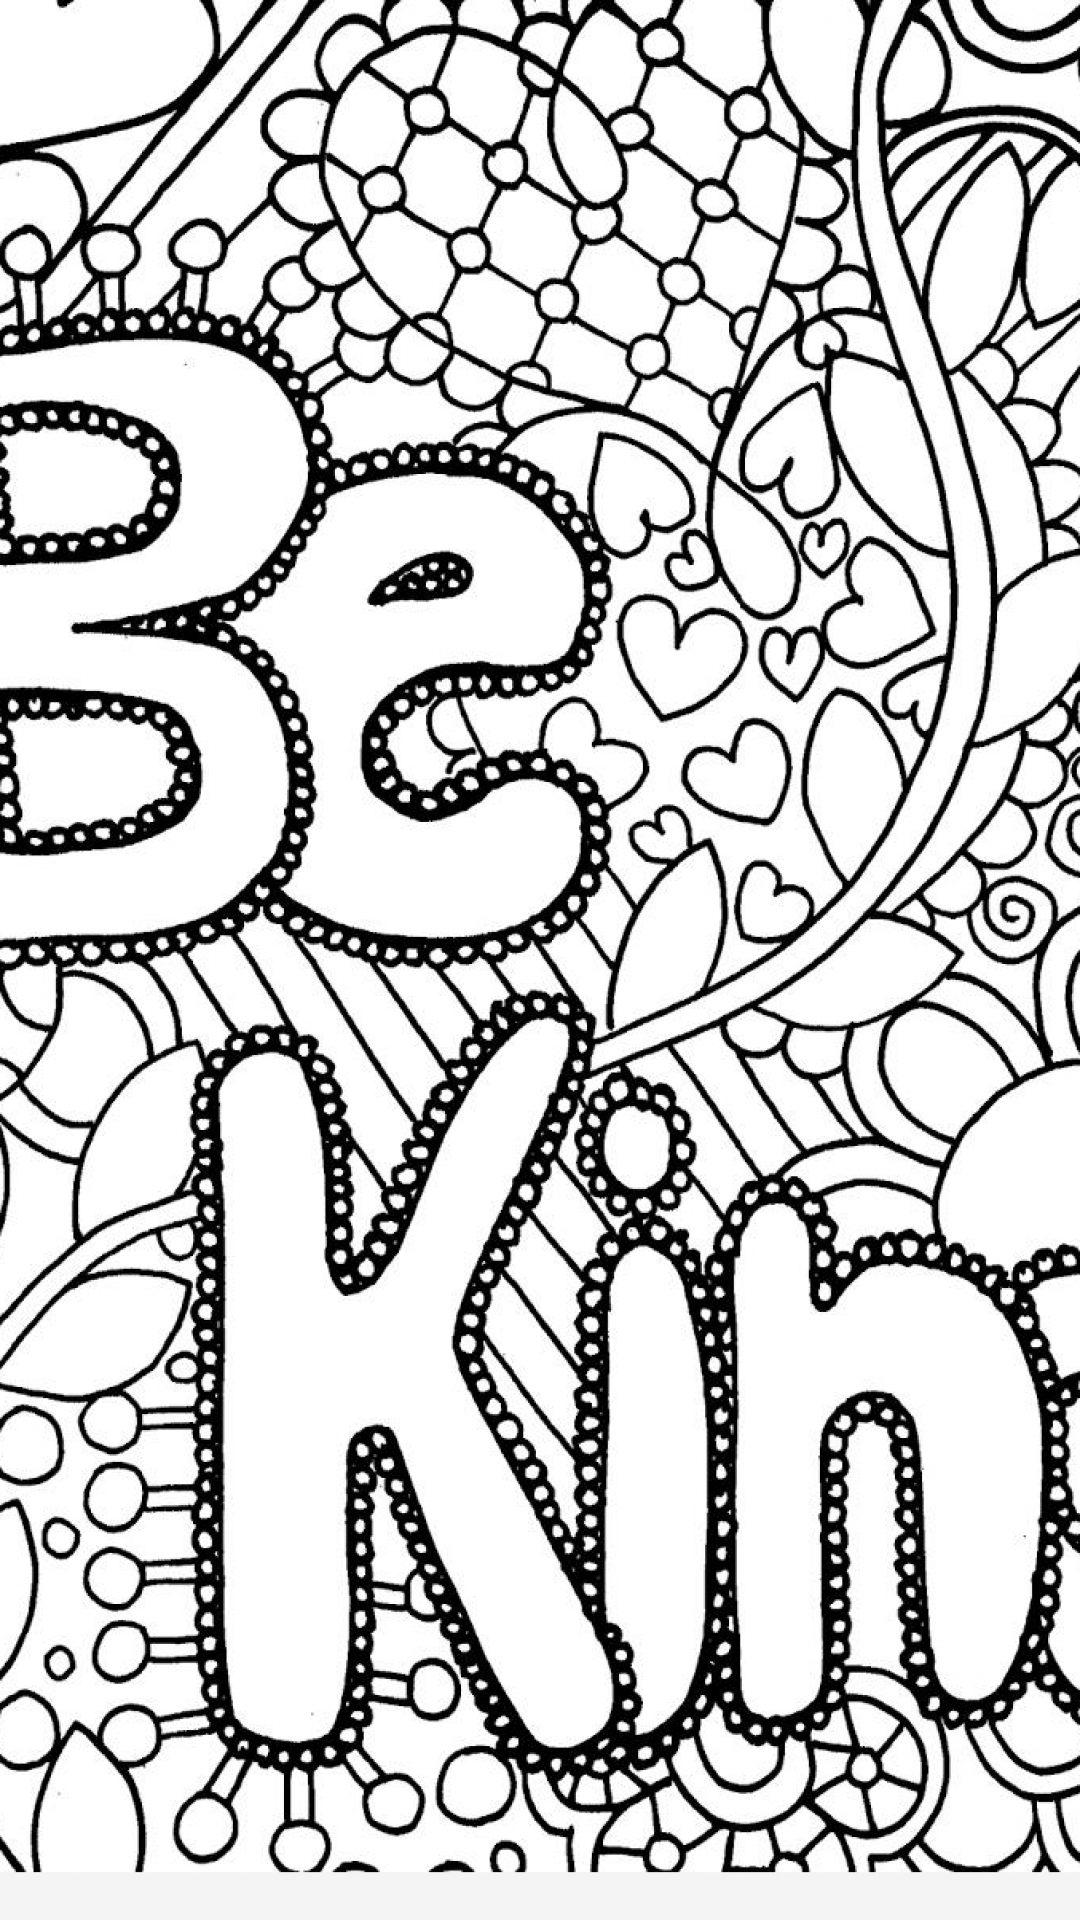 1080x1920 New Coloring Pages Teen Coloring Pages For Adults Printable Resume